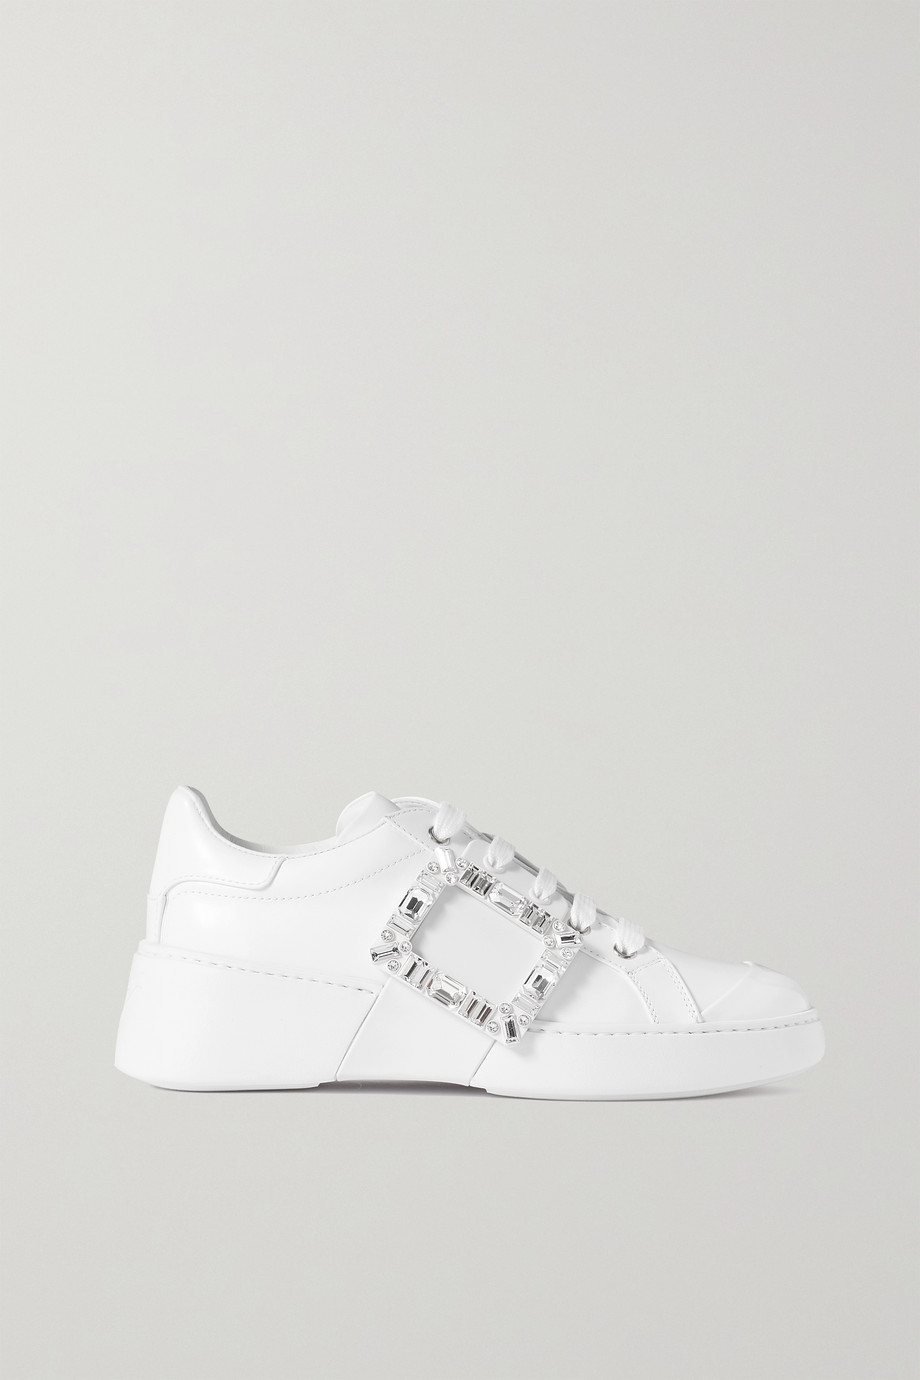 ROGER VIVIER Viv Skate crystal-embellished rubber-trimmed leather sneakers